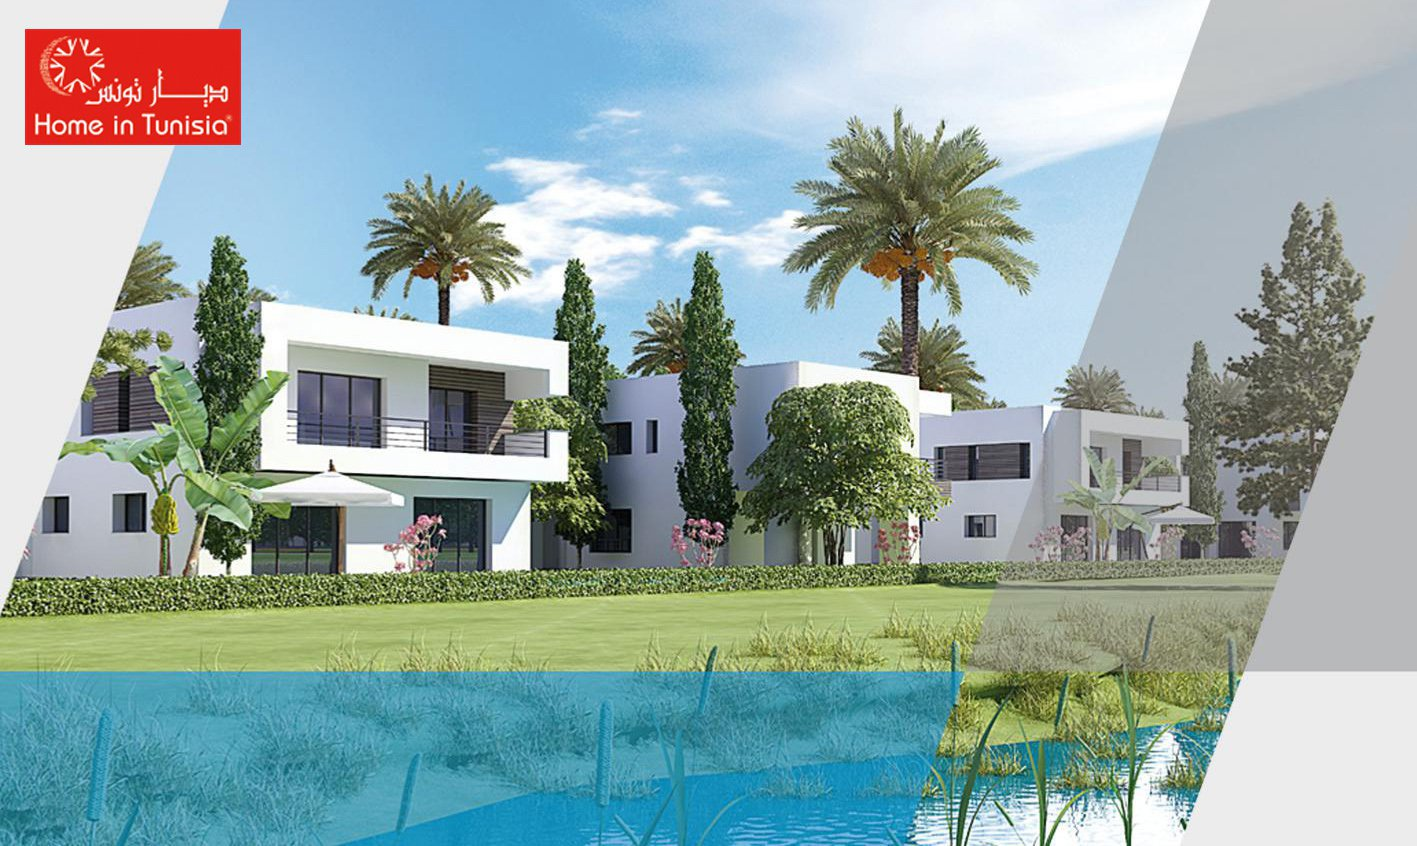 Tunis Bay residential golf villa Oceanos semi-detached 4 bedrooms terrace garden private pool